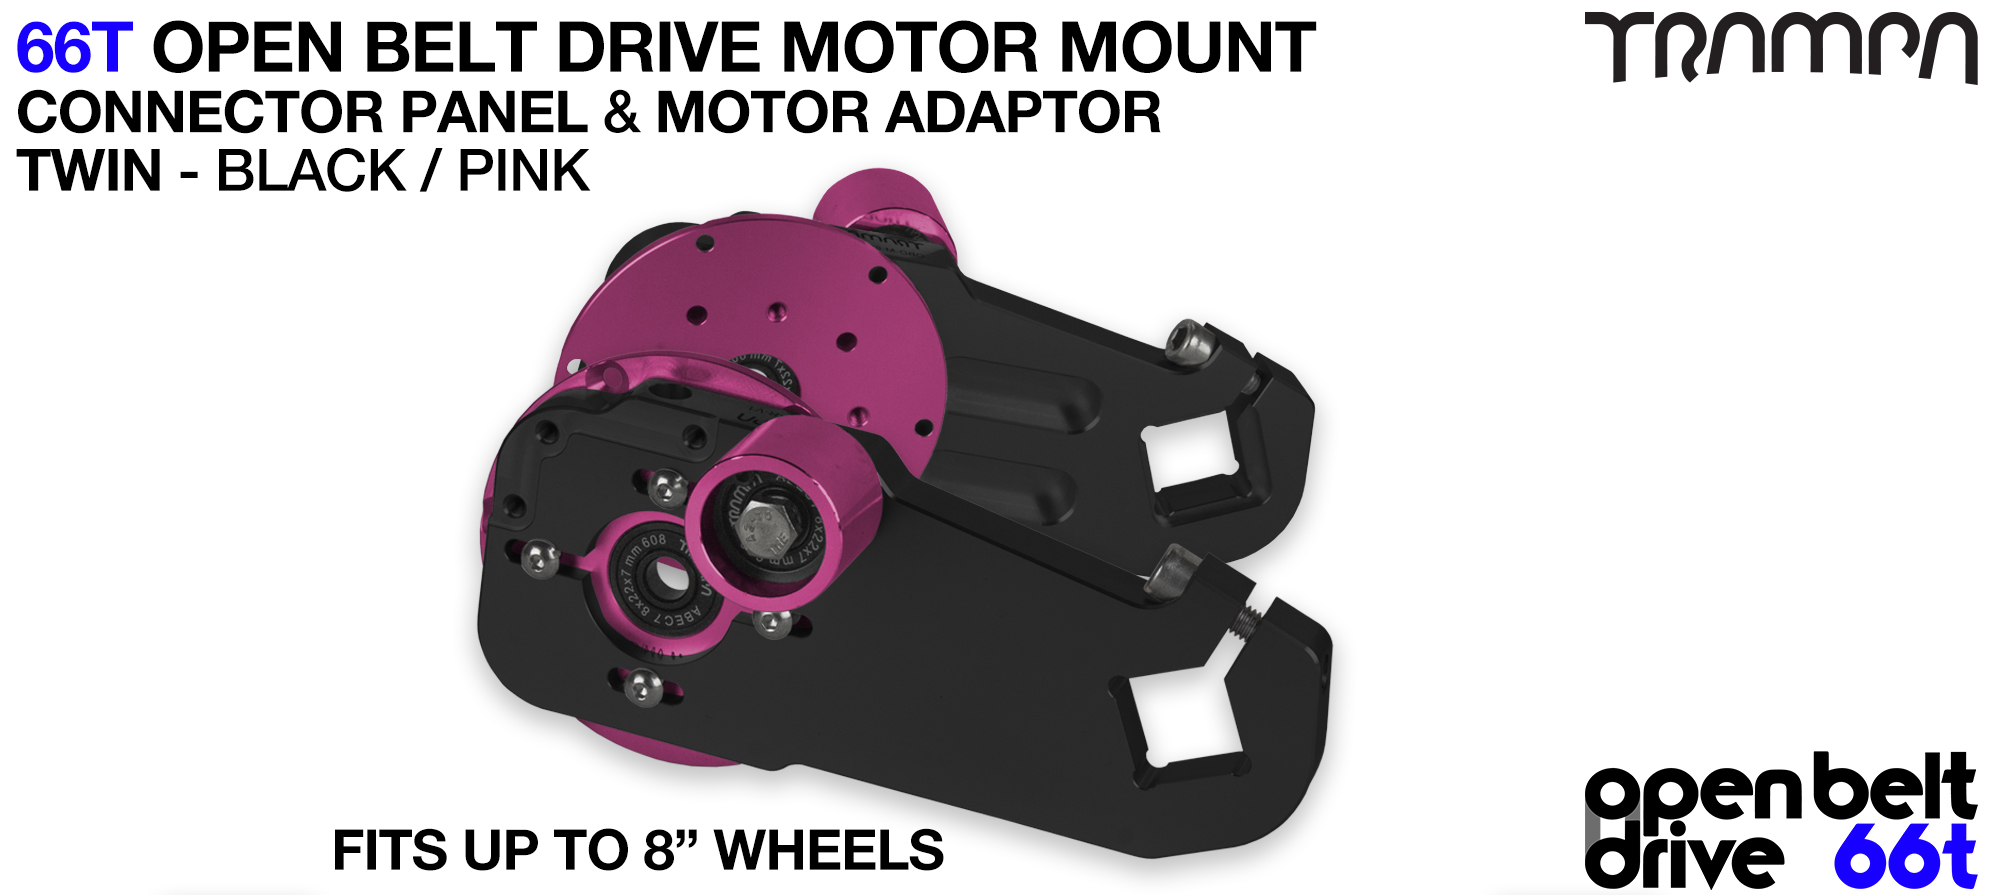 66T OPEN BELT DRIVE Motor Mount & Motor Adaptor - TWIN PINK